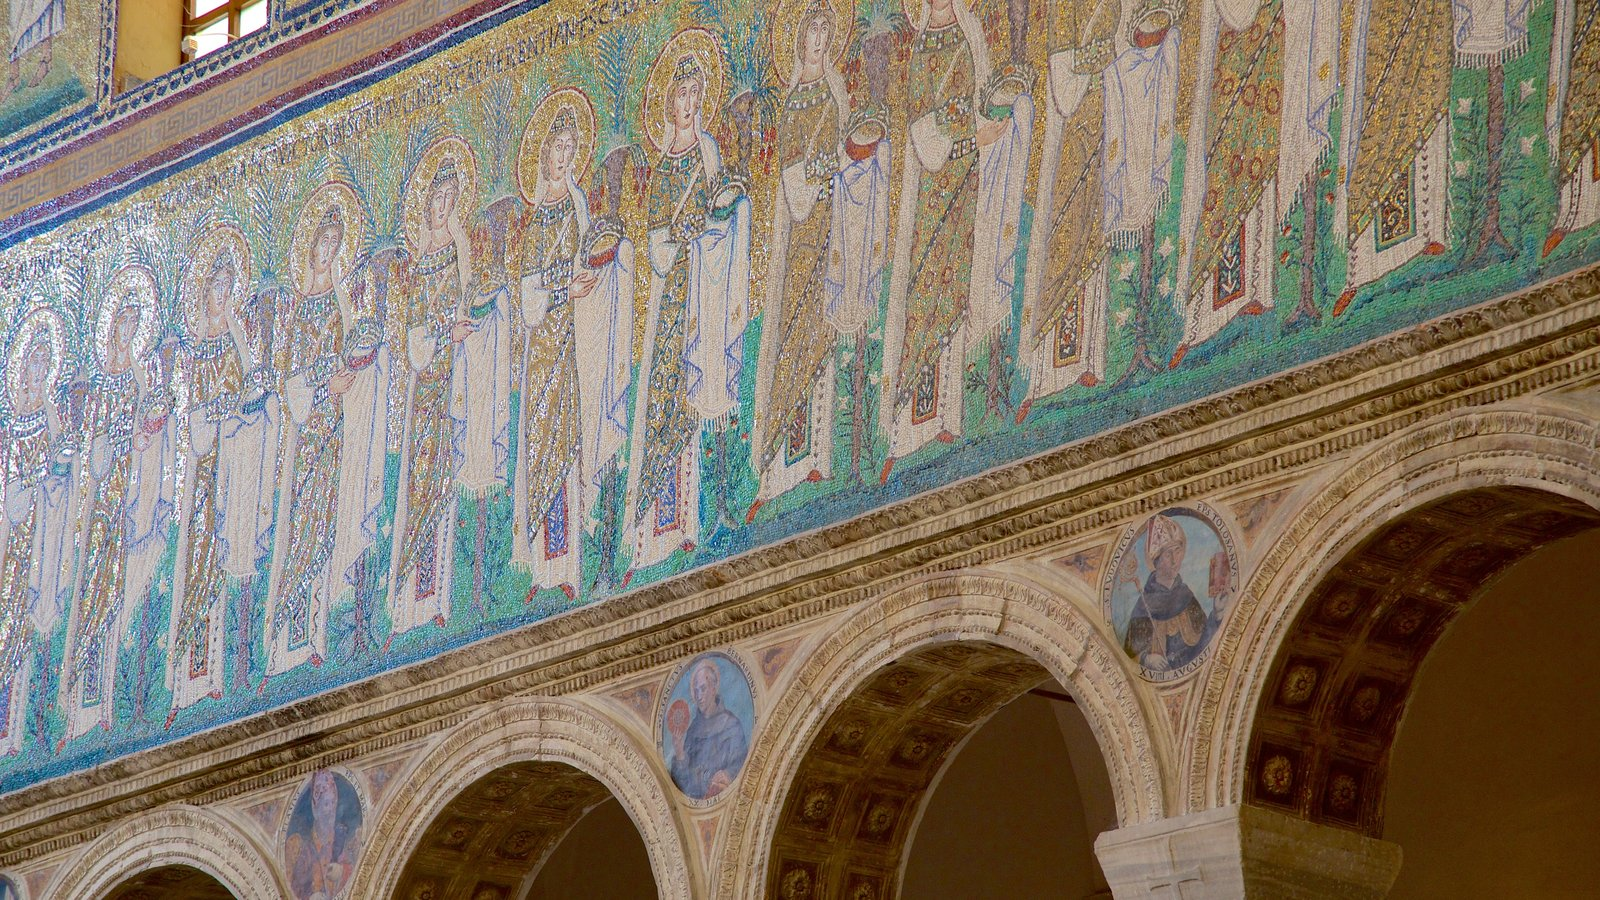 Basilica of Sant\' Apollinare Nuovo which includes religious aspects, a church or cathedral and interior views